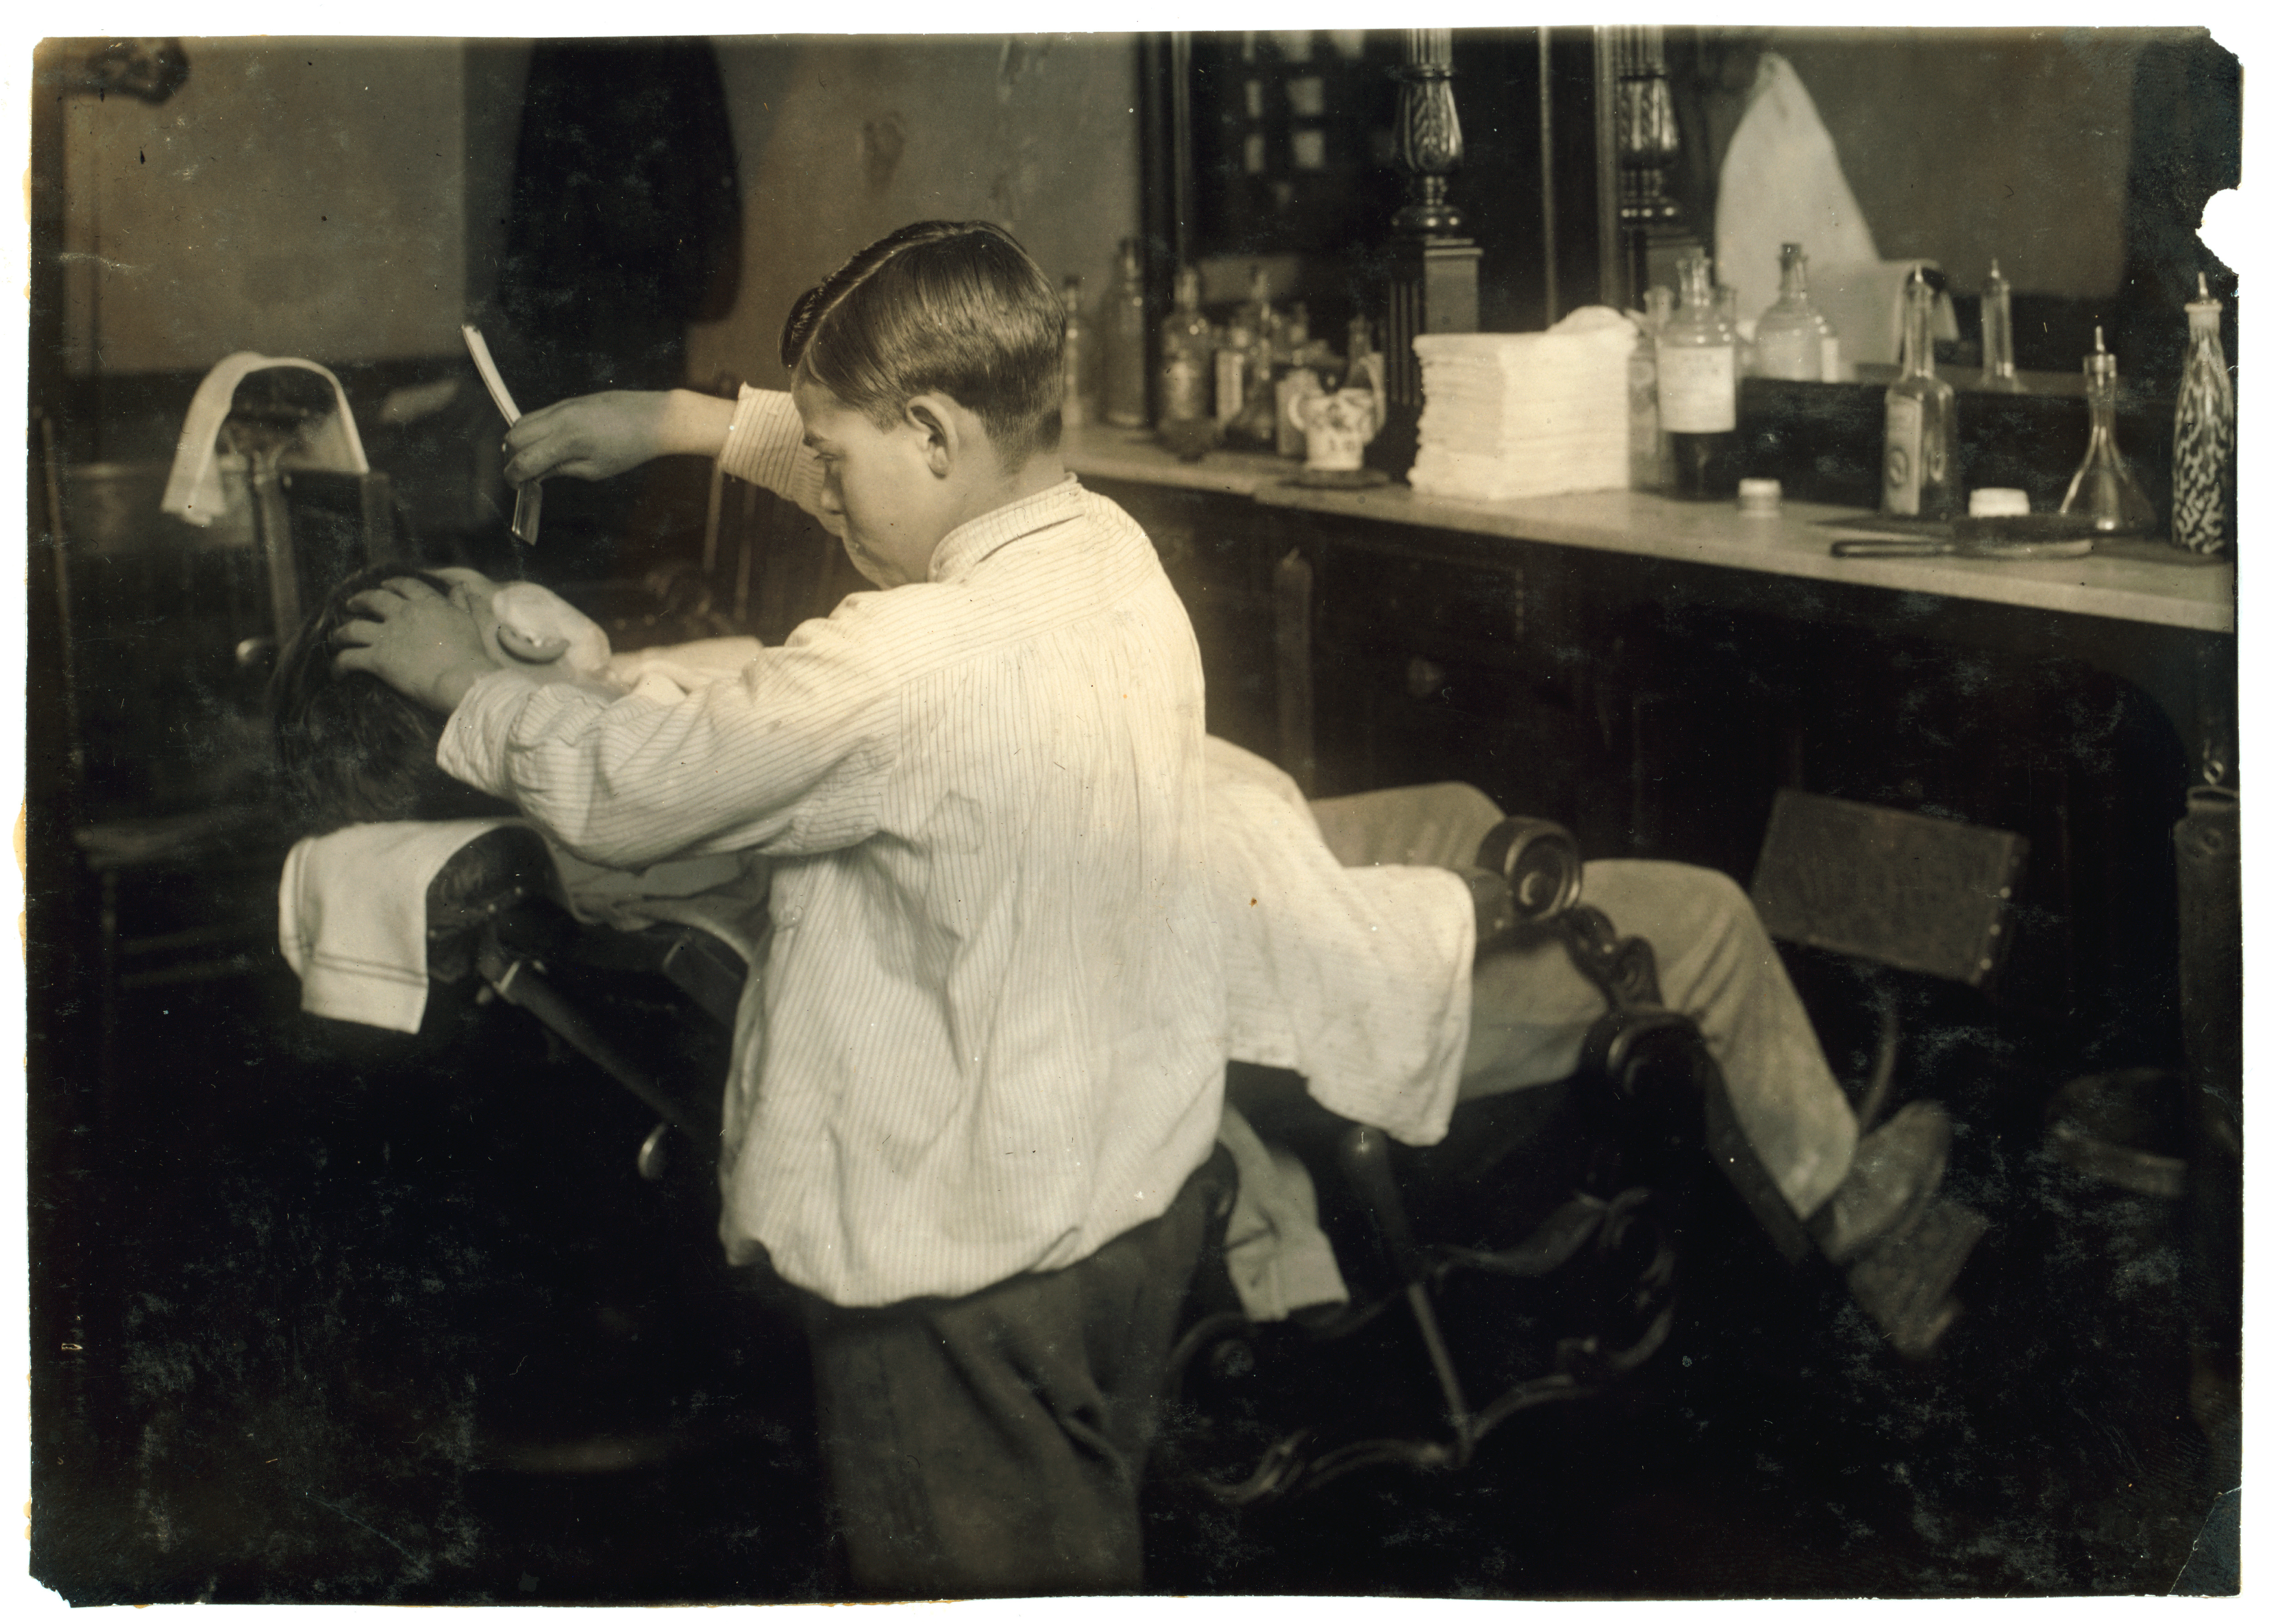 Barber And Shave Shoppe : Afflictor.com ? Barber, Twelve Years Old, Shaves A Head (1917)